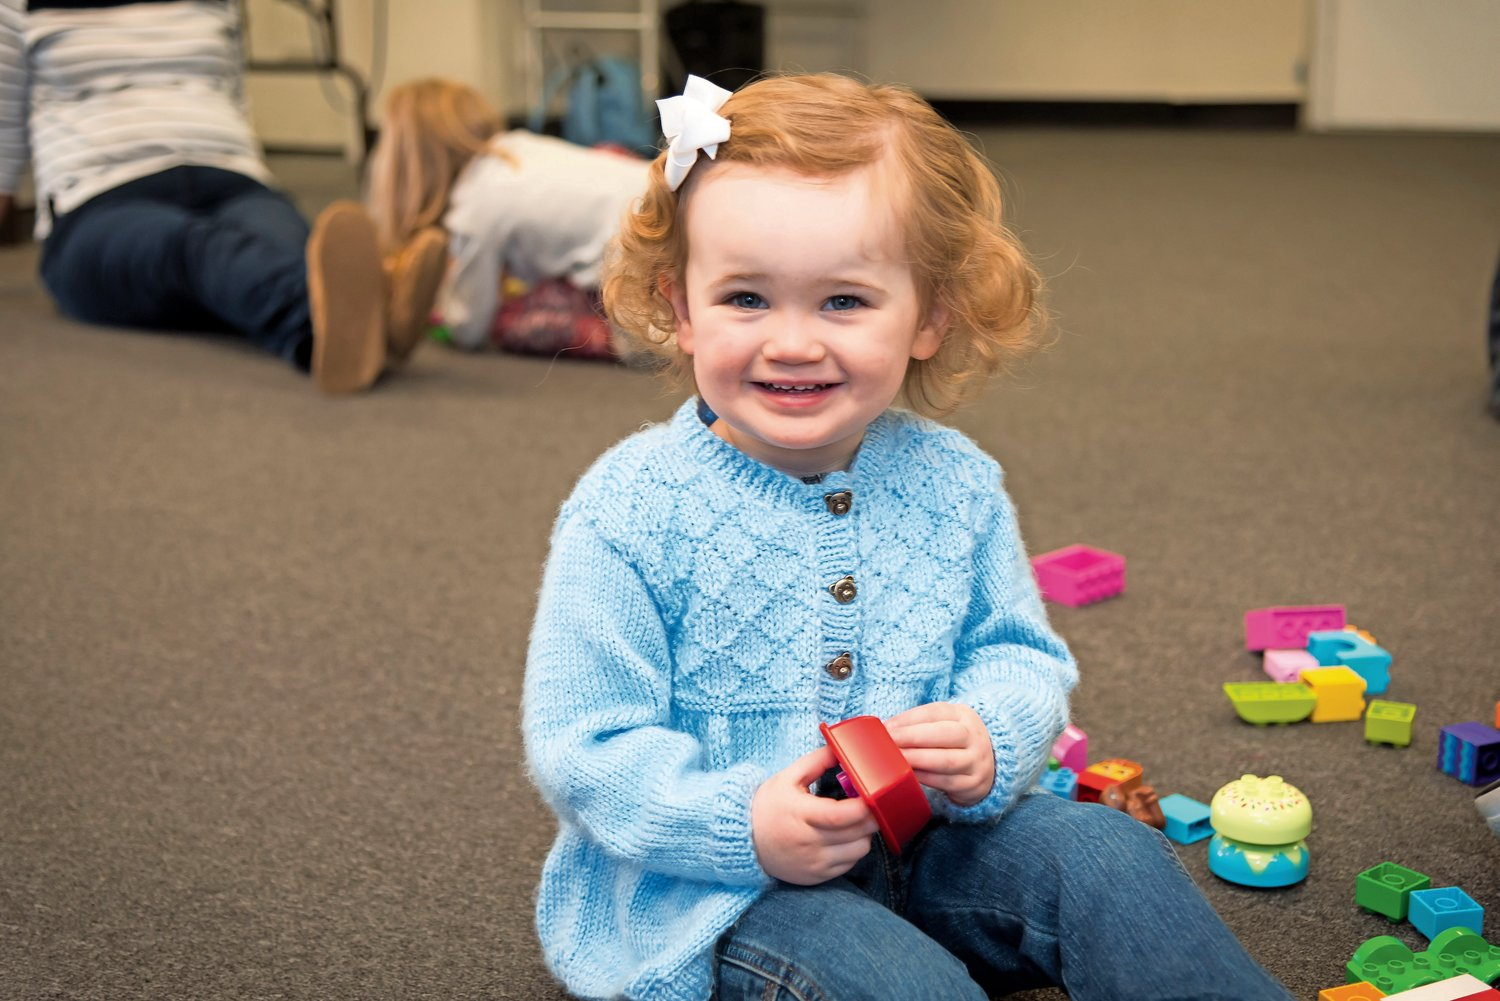 Caroline Reitzig, 2, was very happy to be building with LEGOs.